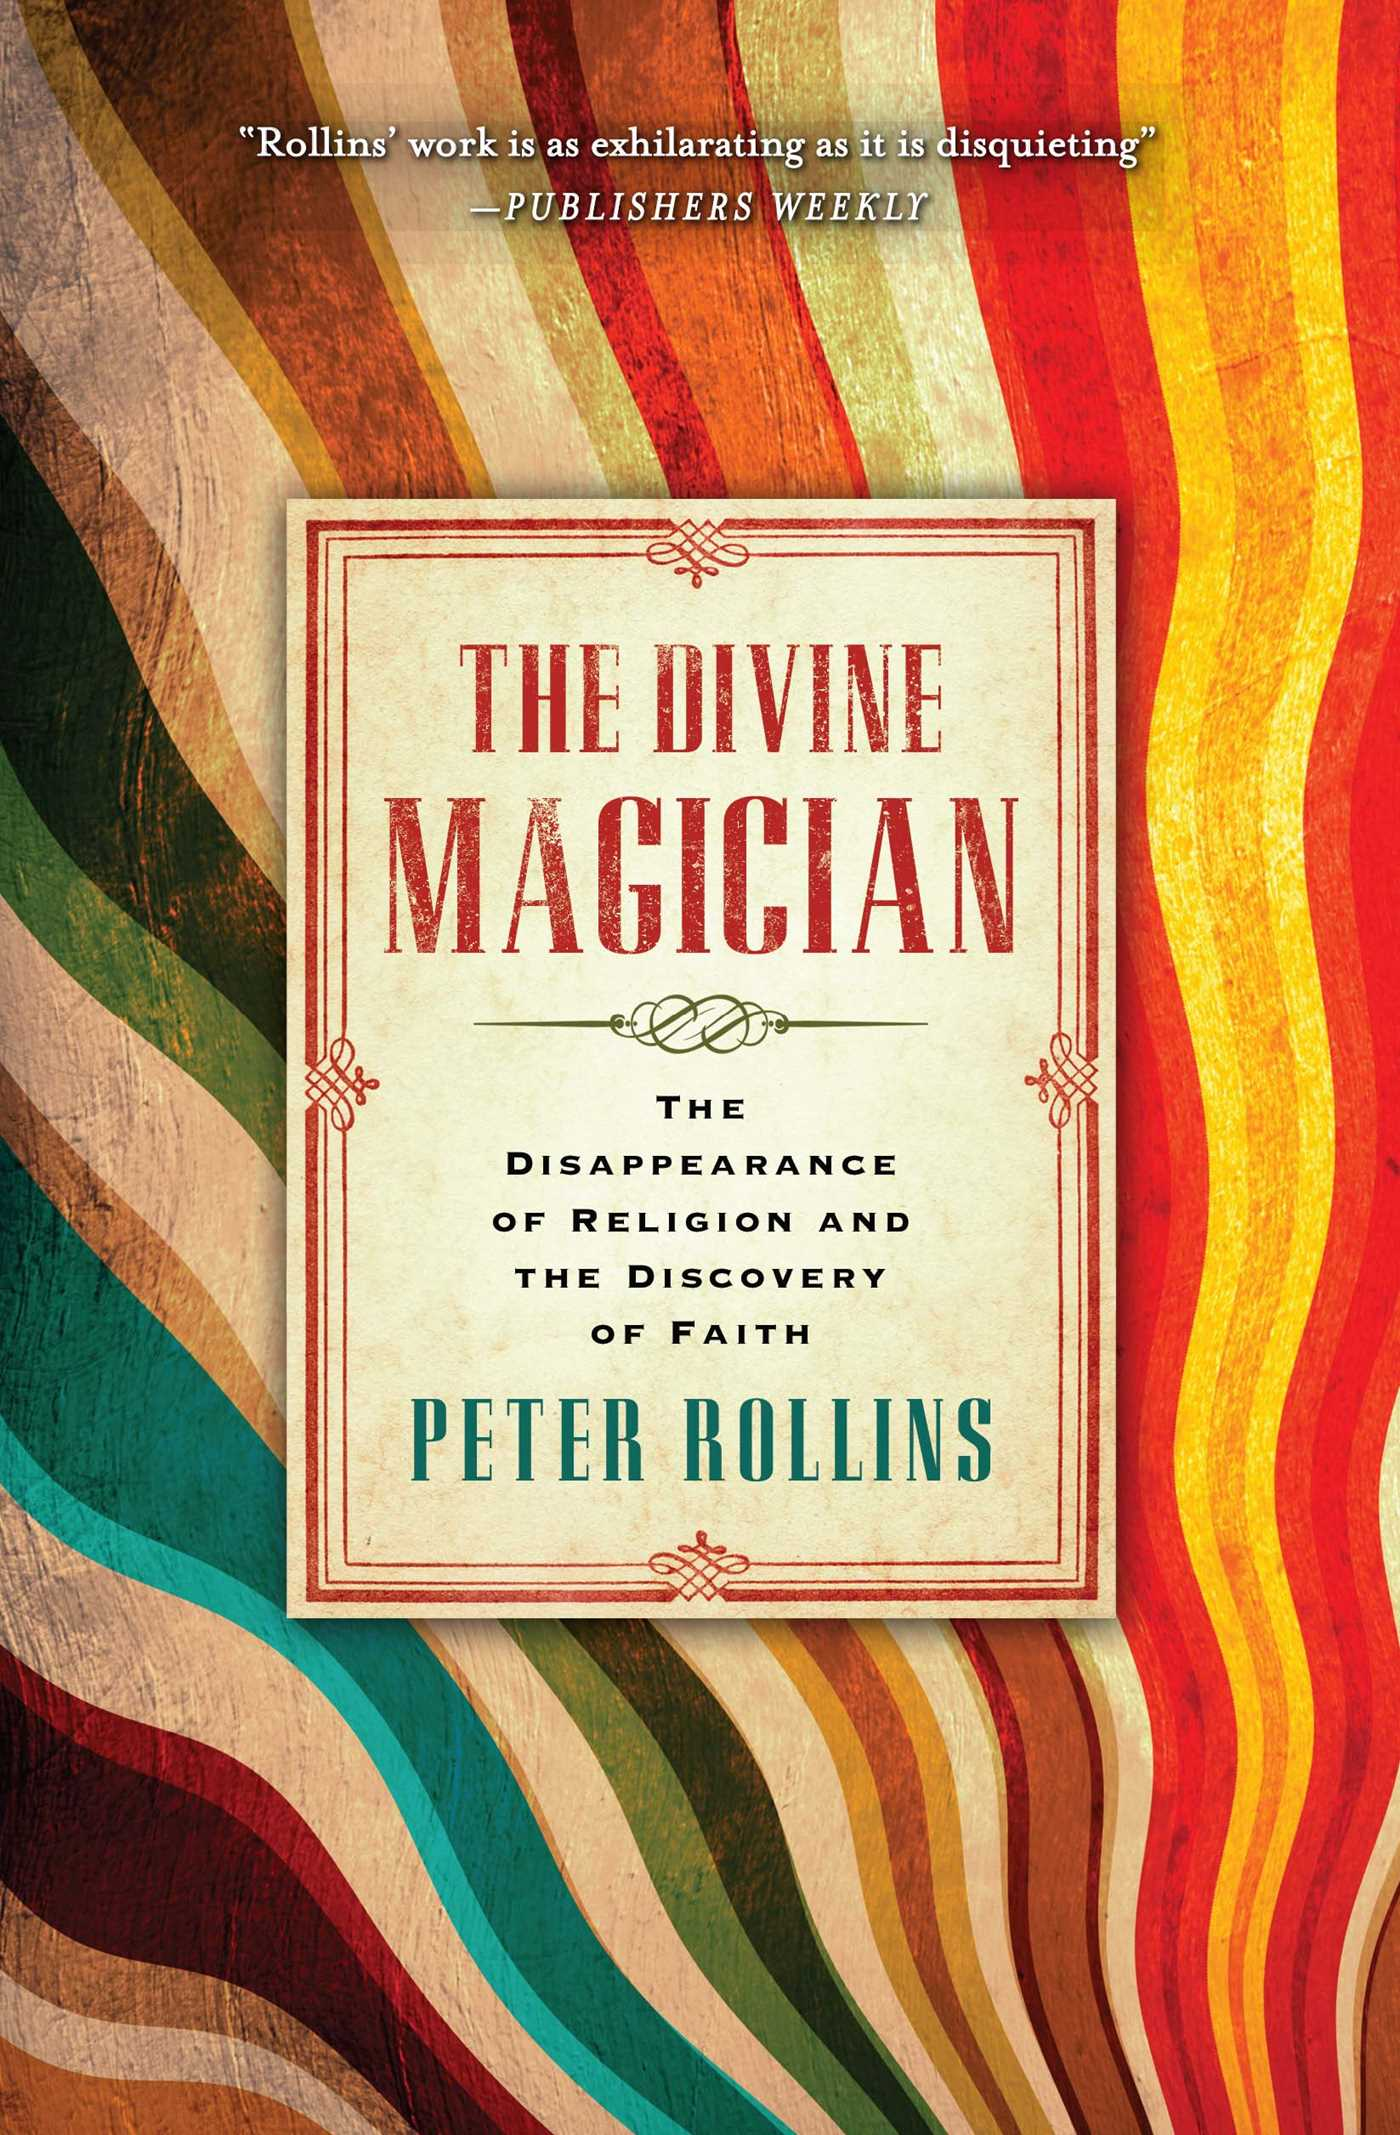 The Divine Magician  Book By Peter Rollins  Official Publisher Page   Simon & Schuster